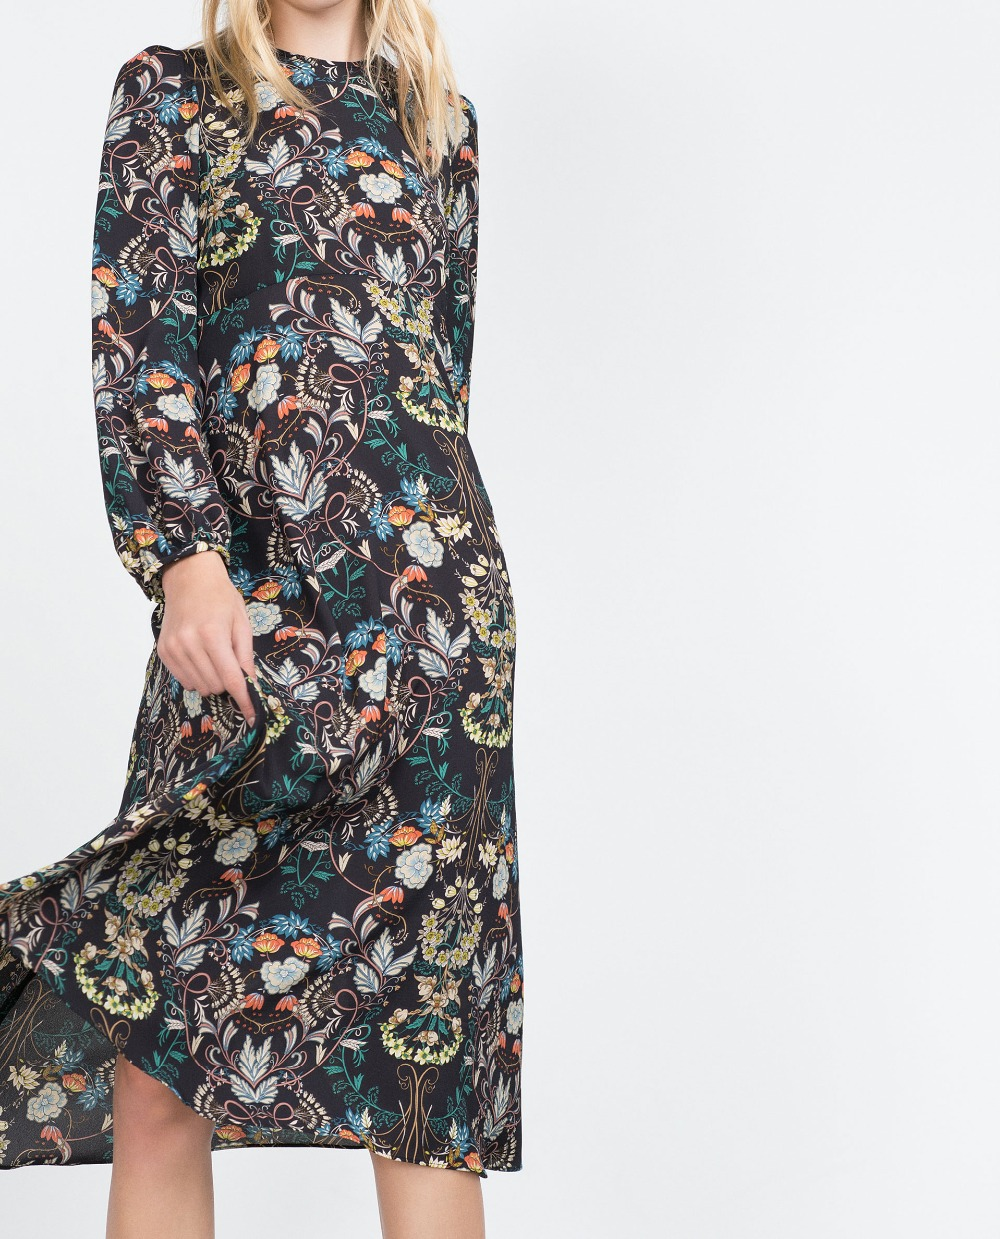 05222ba9cb0 2015 Autumn Winter Women Elegant Fashion Floral Printed Midi dress Long  sleeved Round Neck Long Pleated Layered Dresses-in Dresses from Women's  Clothing on ...